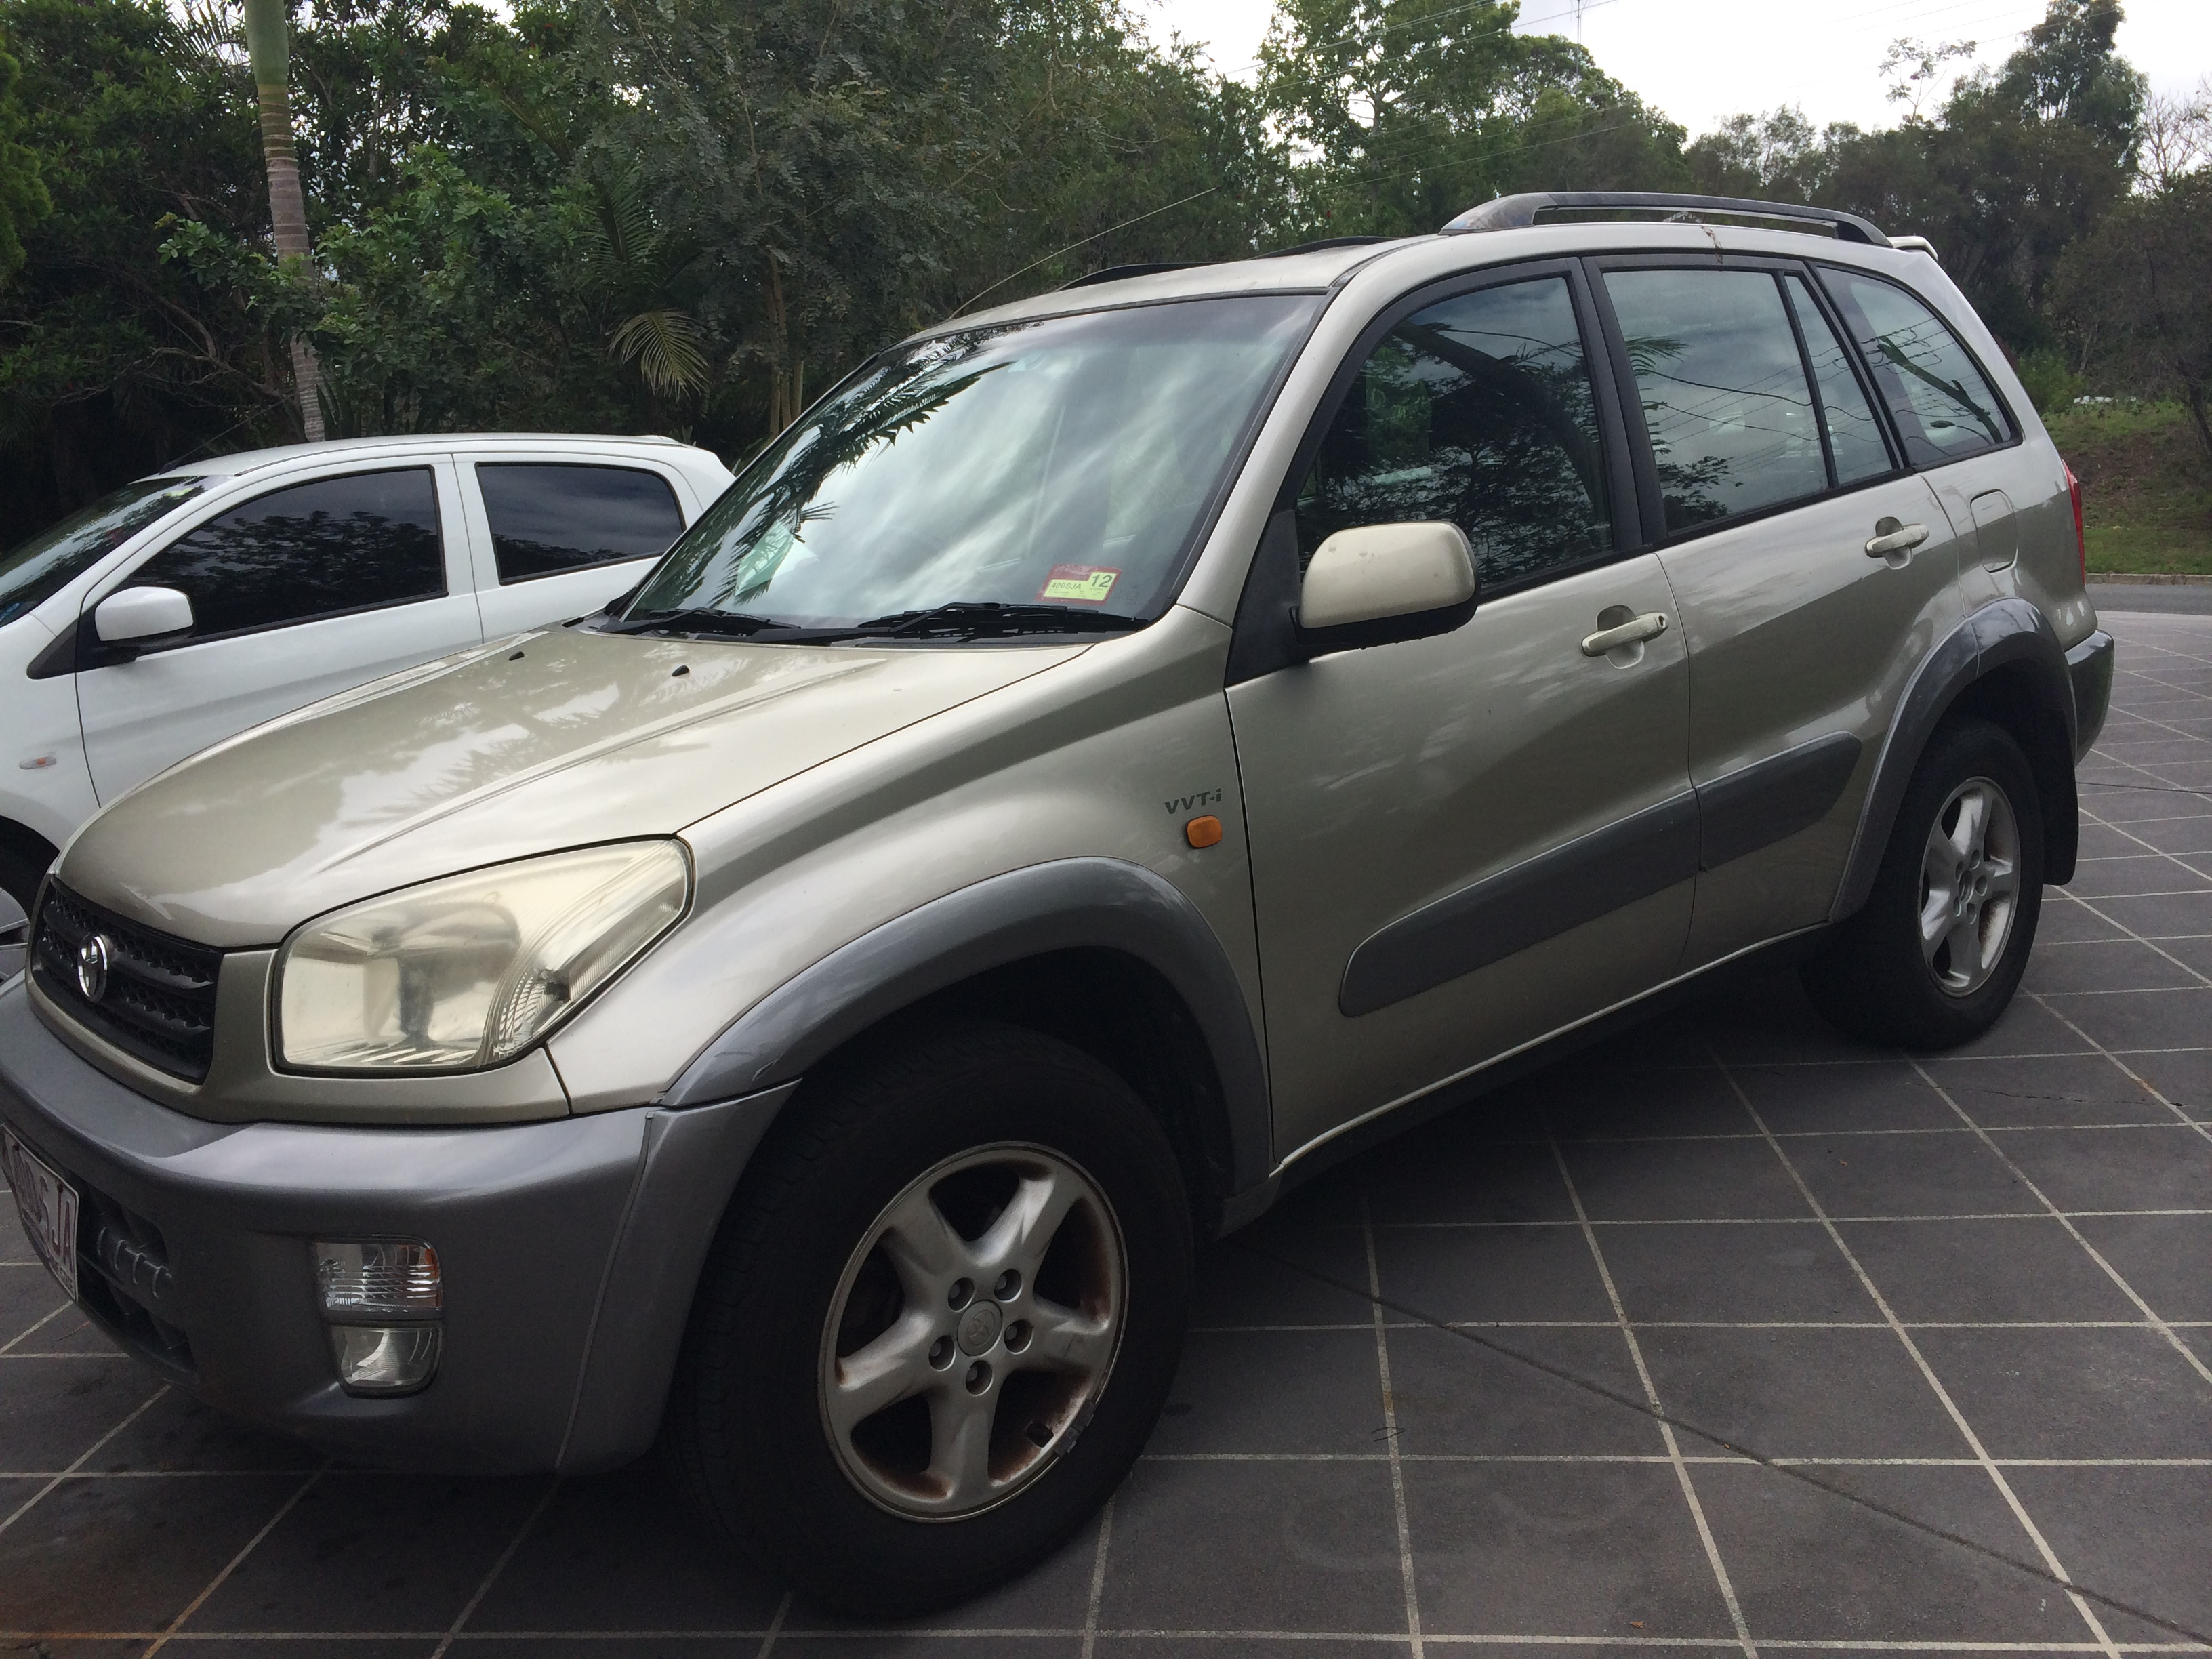 2002 toyota rav4 cruiser 4x4 aca21r car sales qld. Black Bedroom Furniture Sets. Home Design Ideas